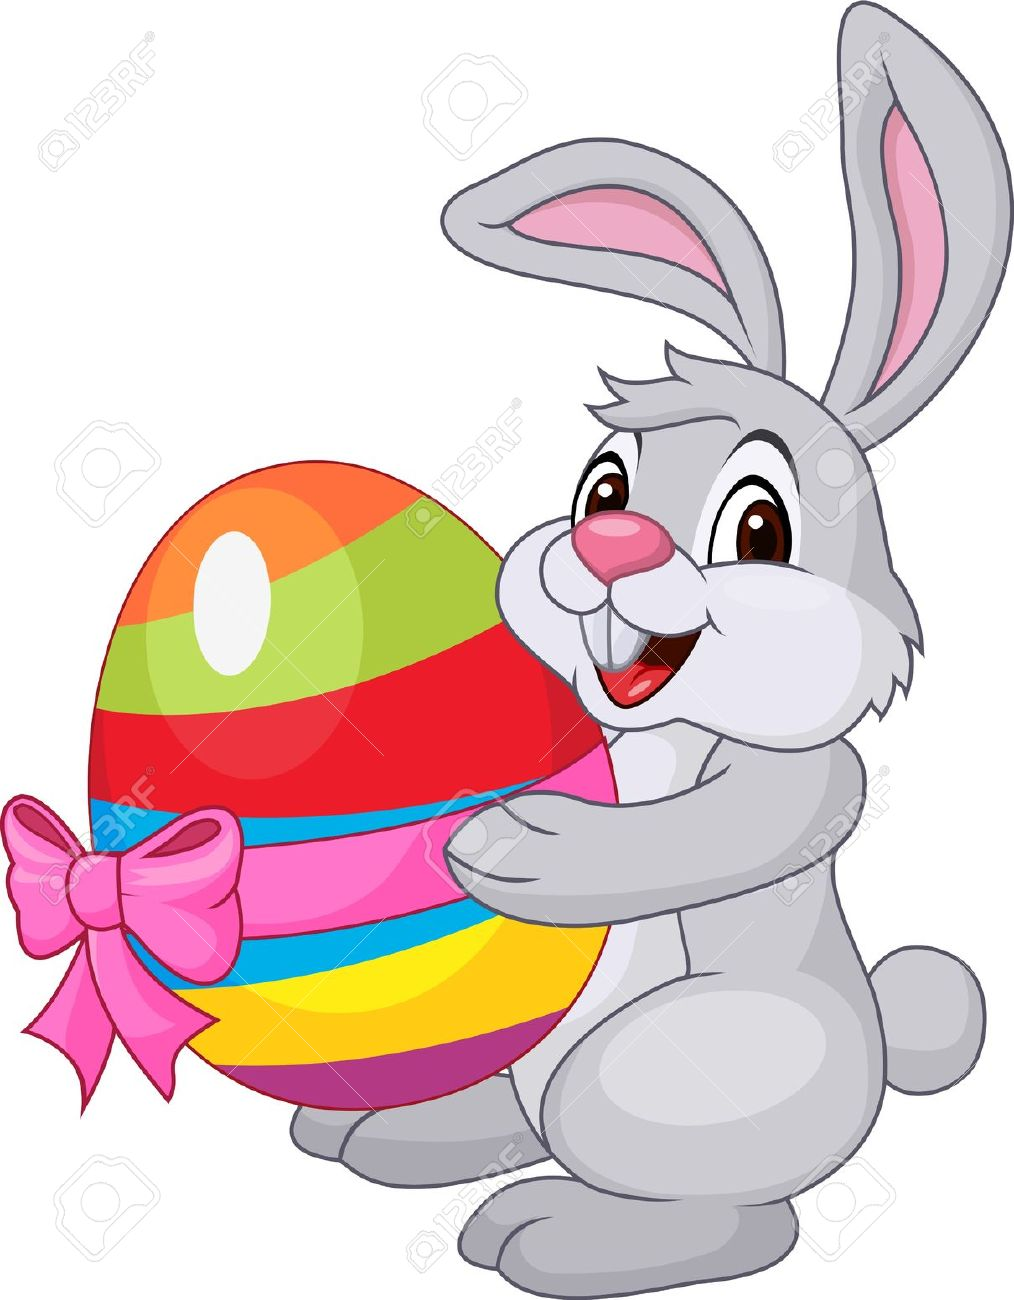 Easter Bunny Pictures Free | Free download best Easter Bunny ... for Real Easter Bunny With Eggs  111ane